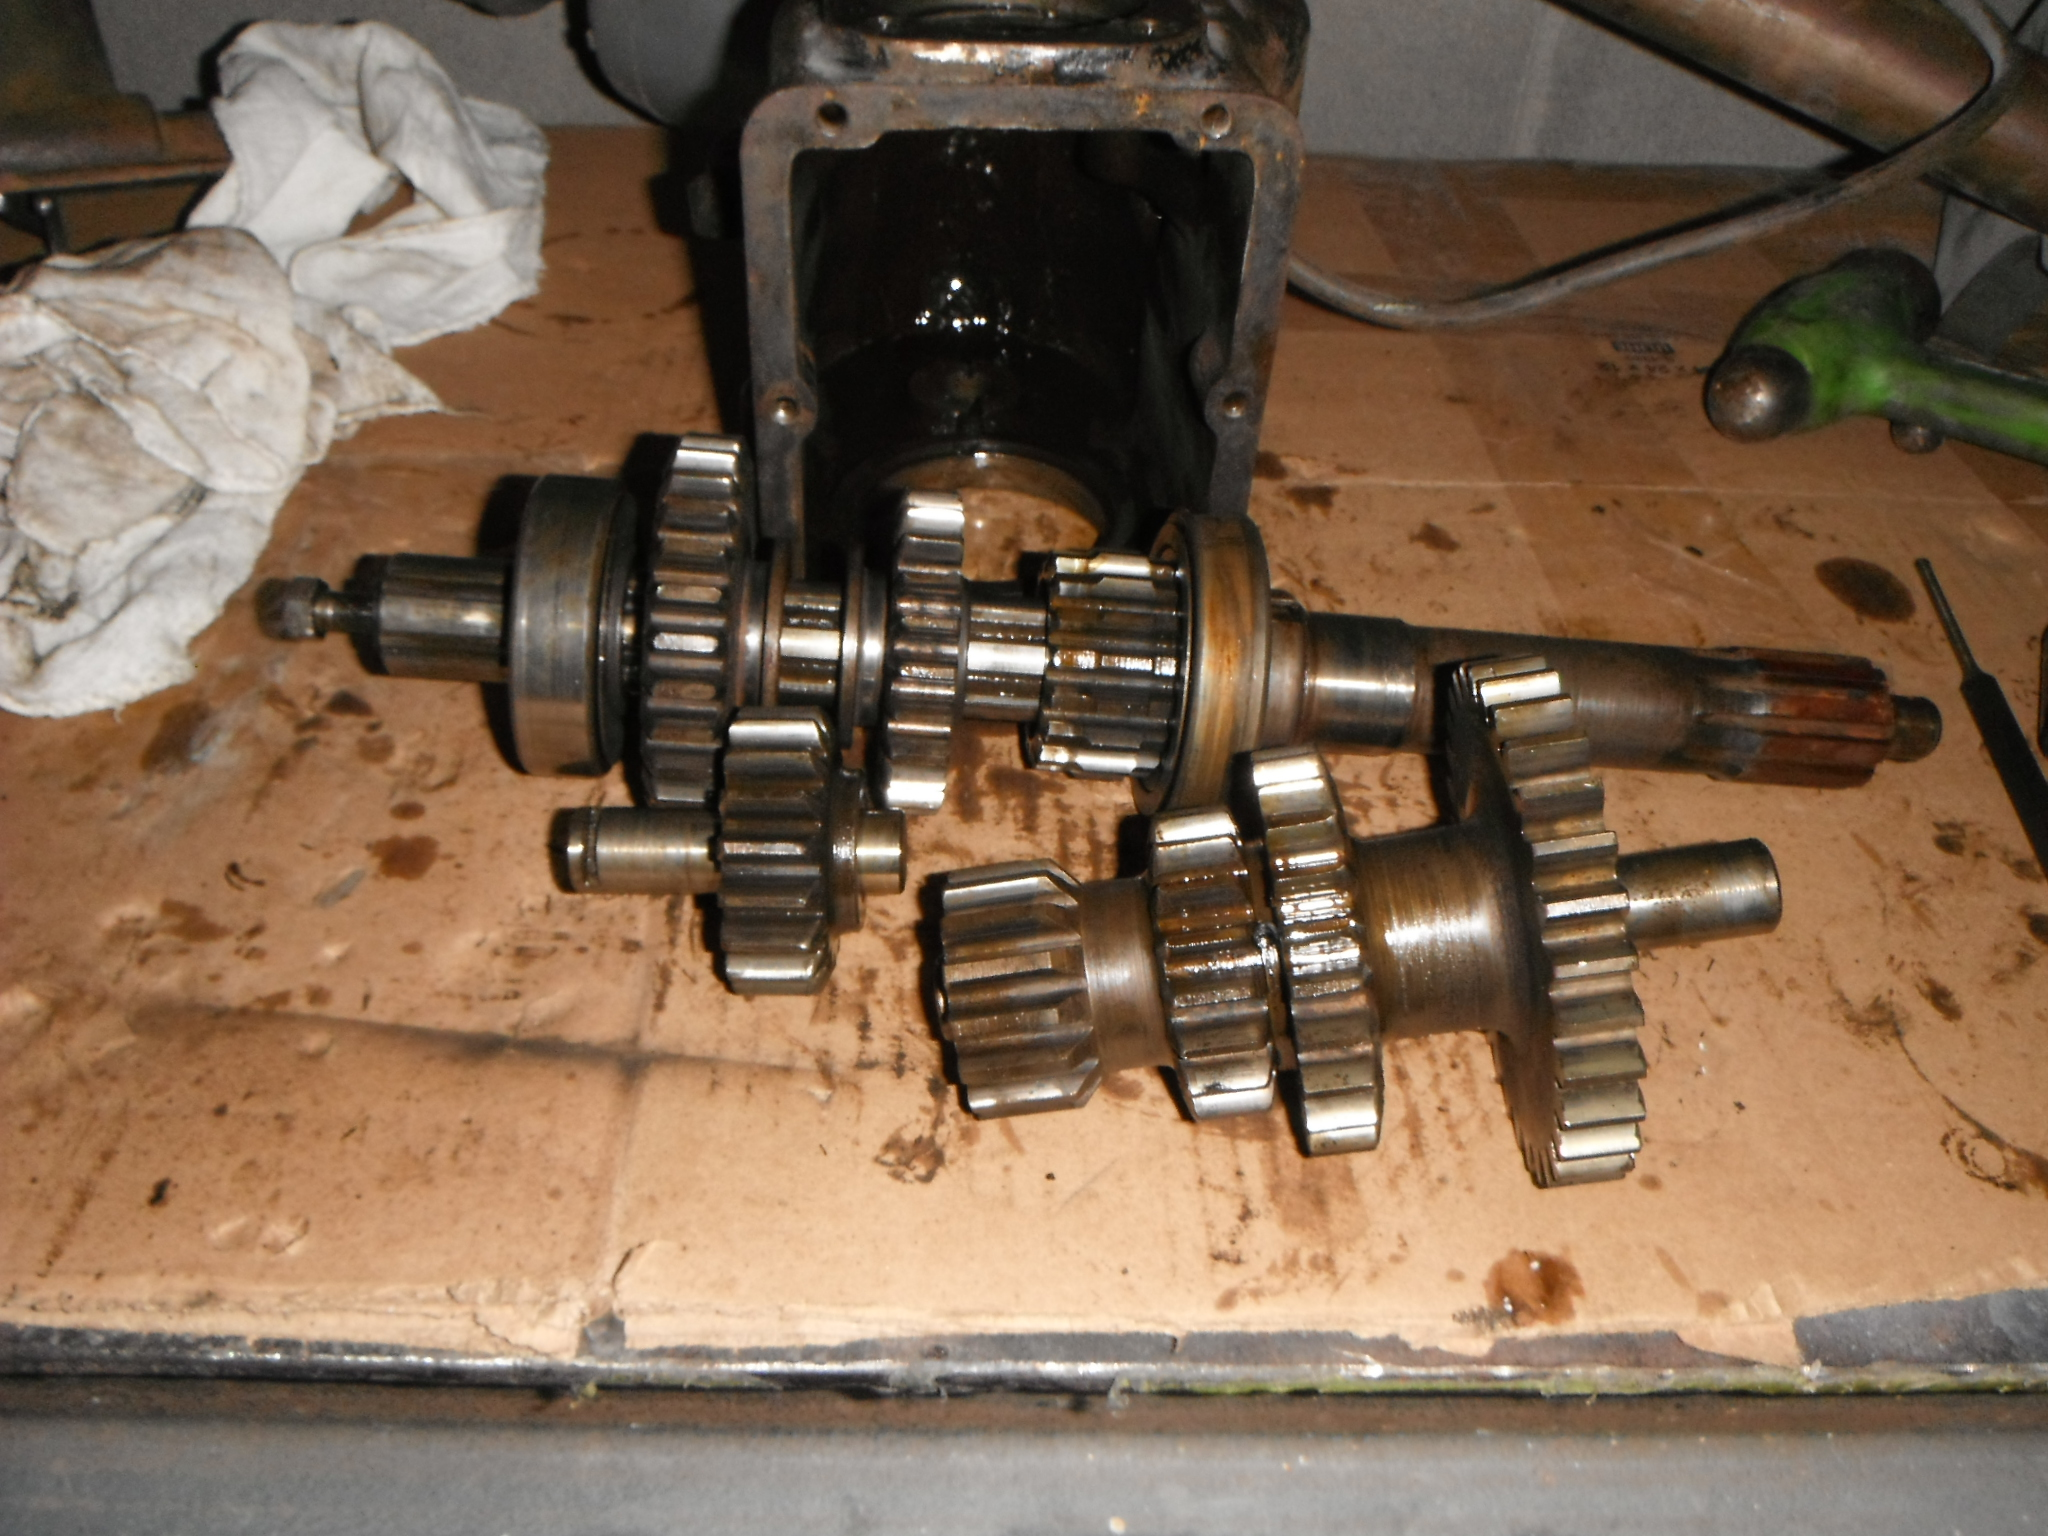 1931 Ford Model A -- Gearbox being disassembled for cleaning, inspection, and rebuild.